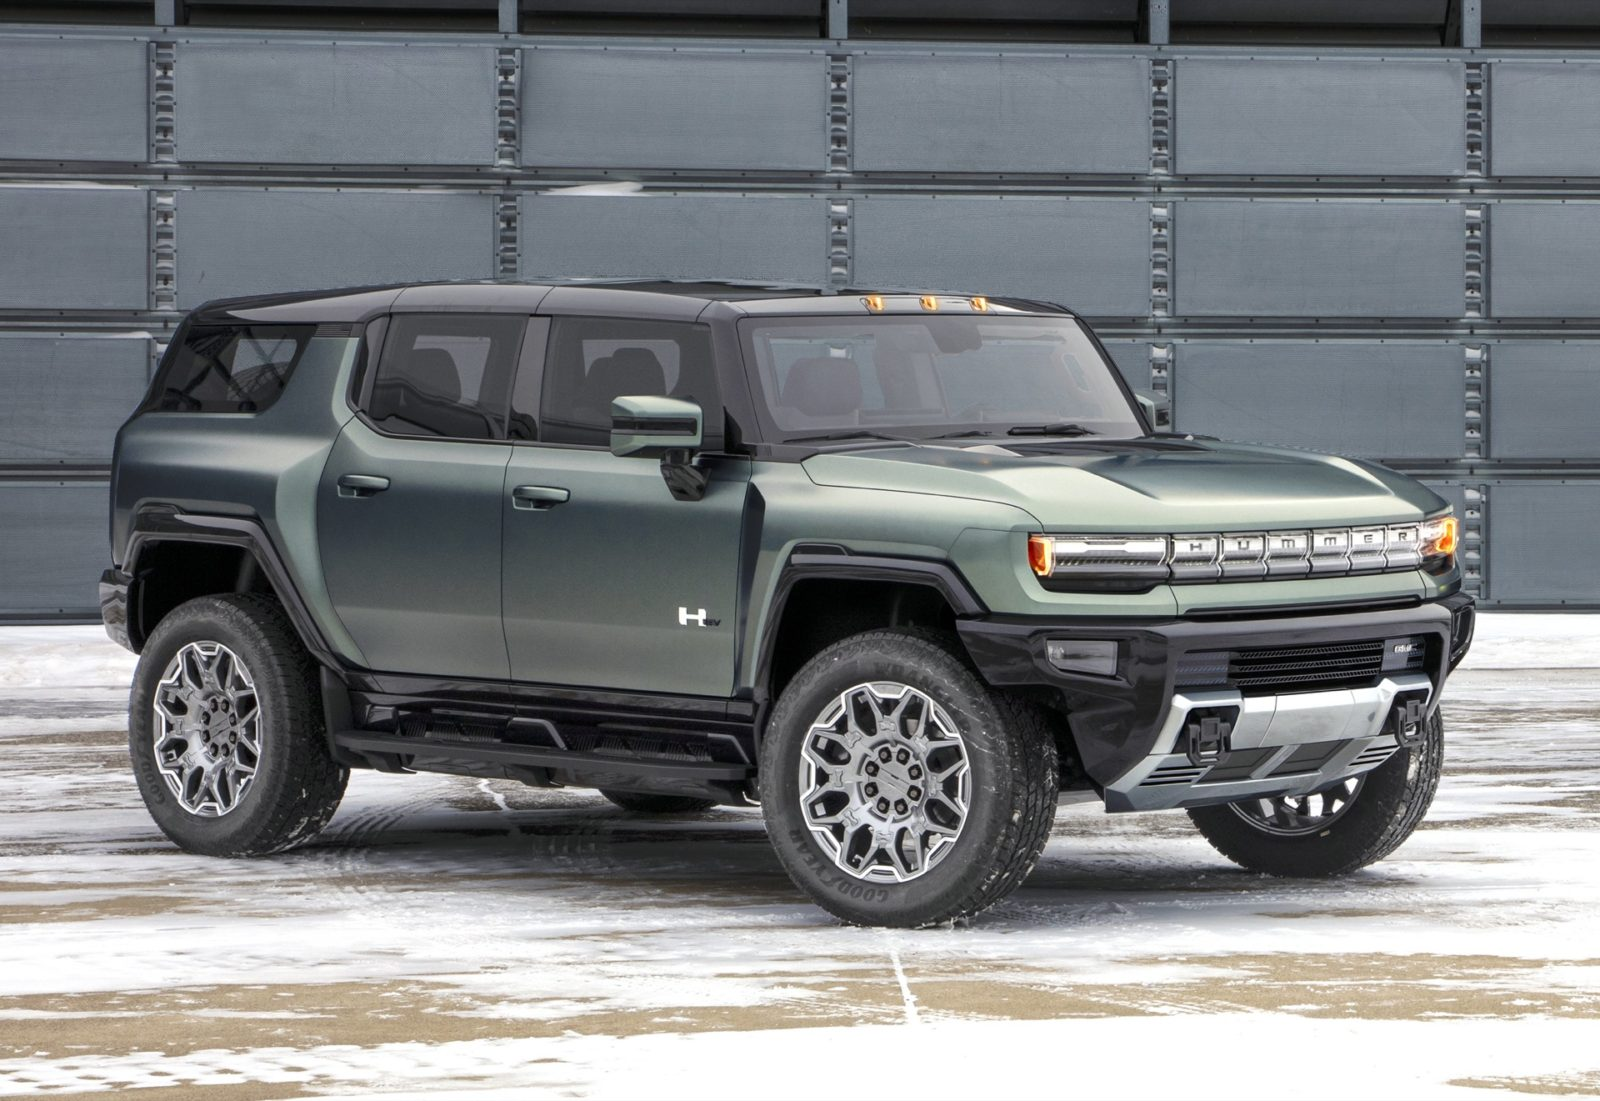 2024-gmc-hummer-electric-suv-ranges-from-$79,995-to-$110,595